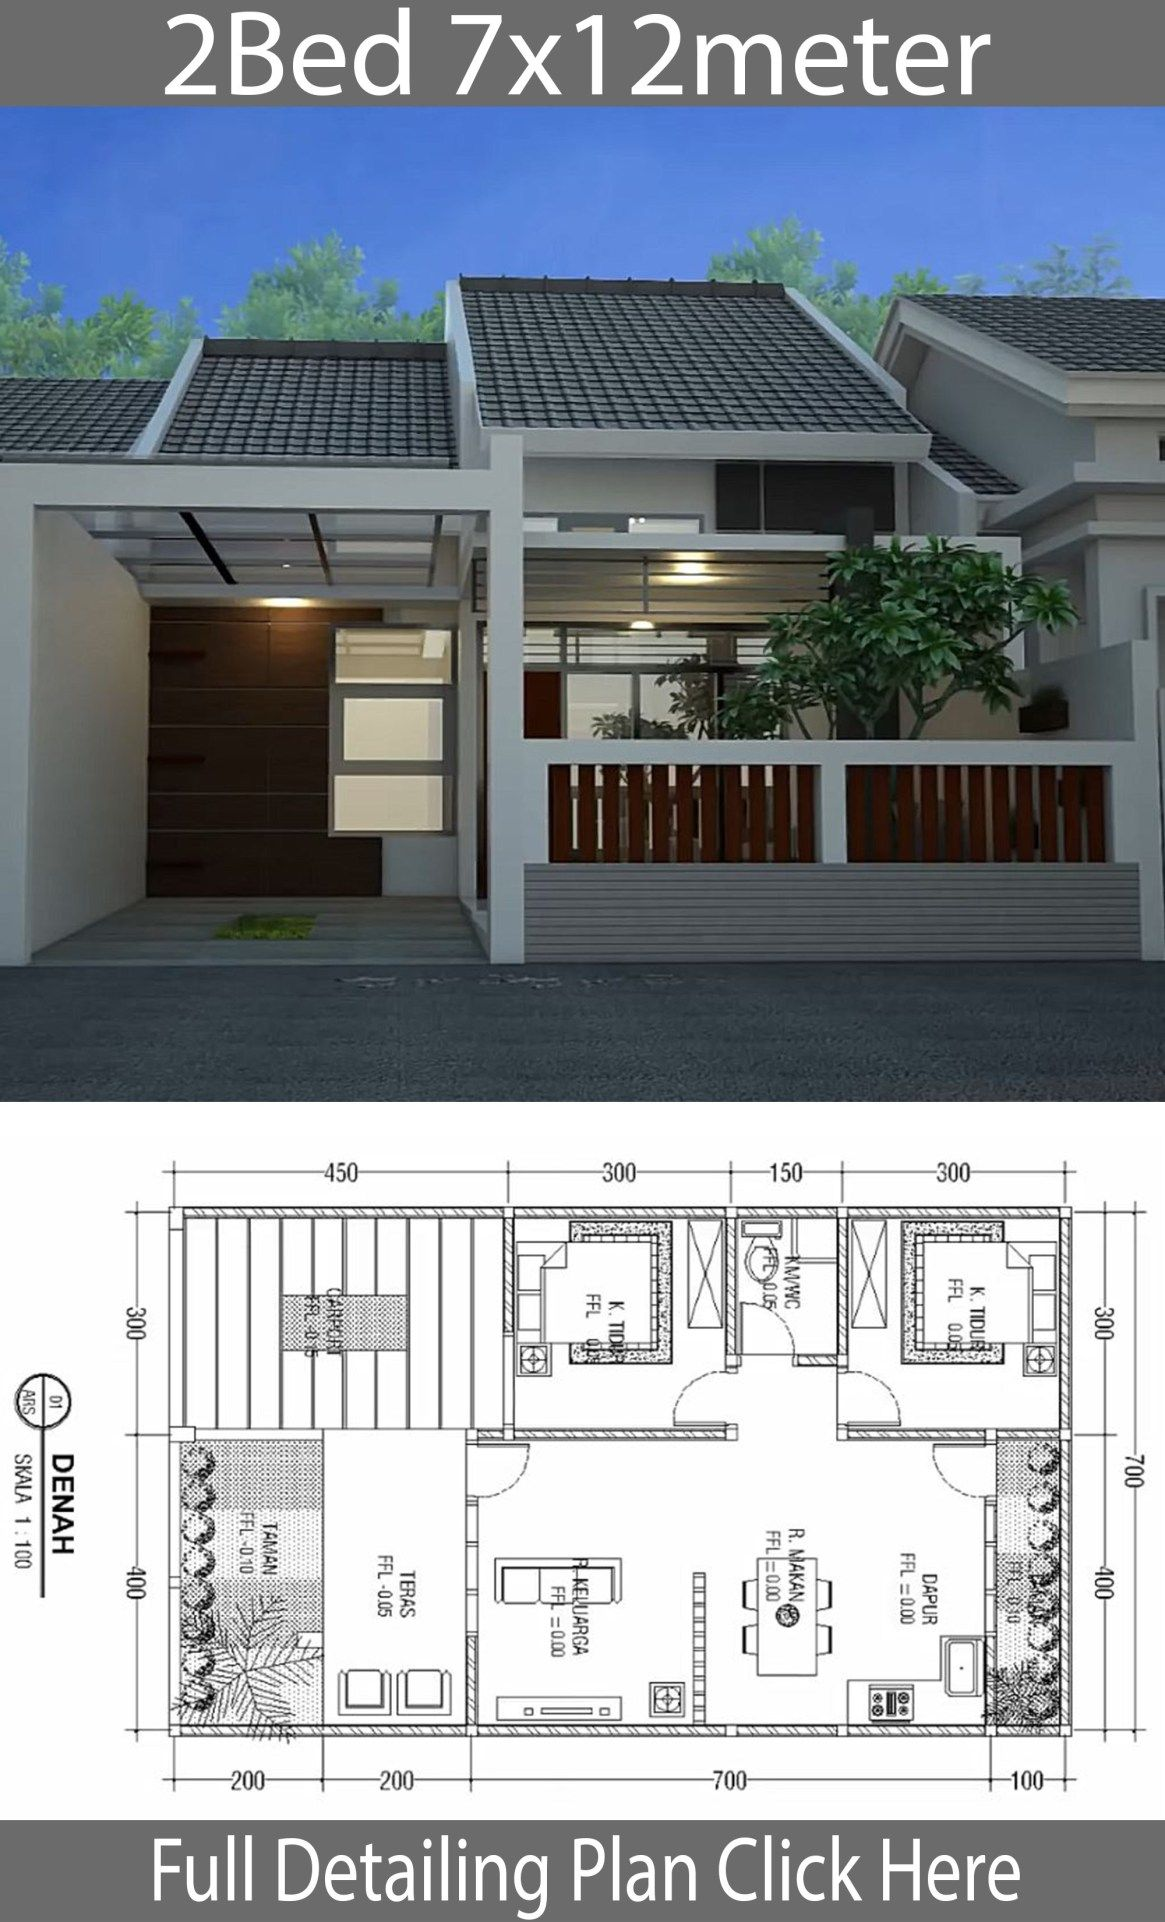 Minimalist Floor Design One Floor House 7x12m Home Design With Plansearch Small Modern House Plans House Roof Design Modern House Design